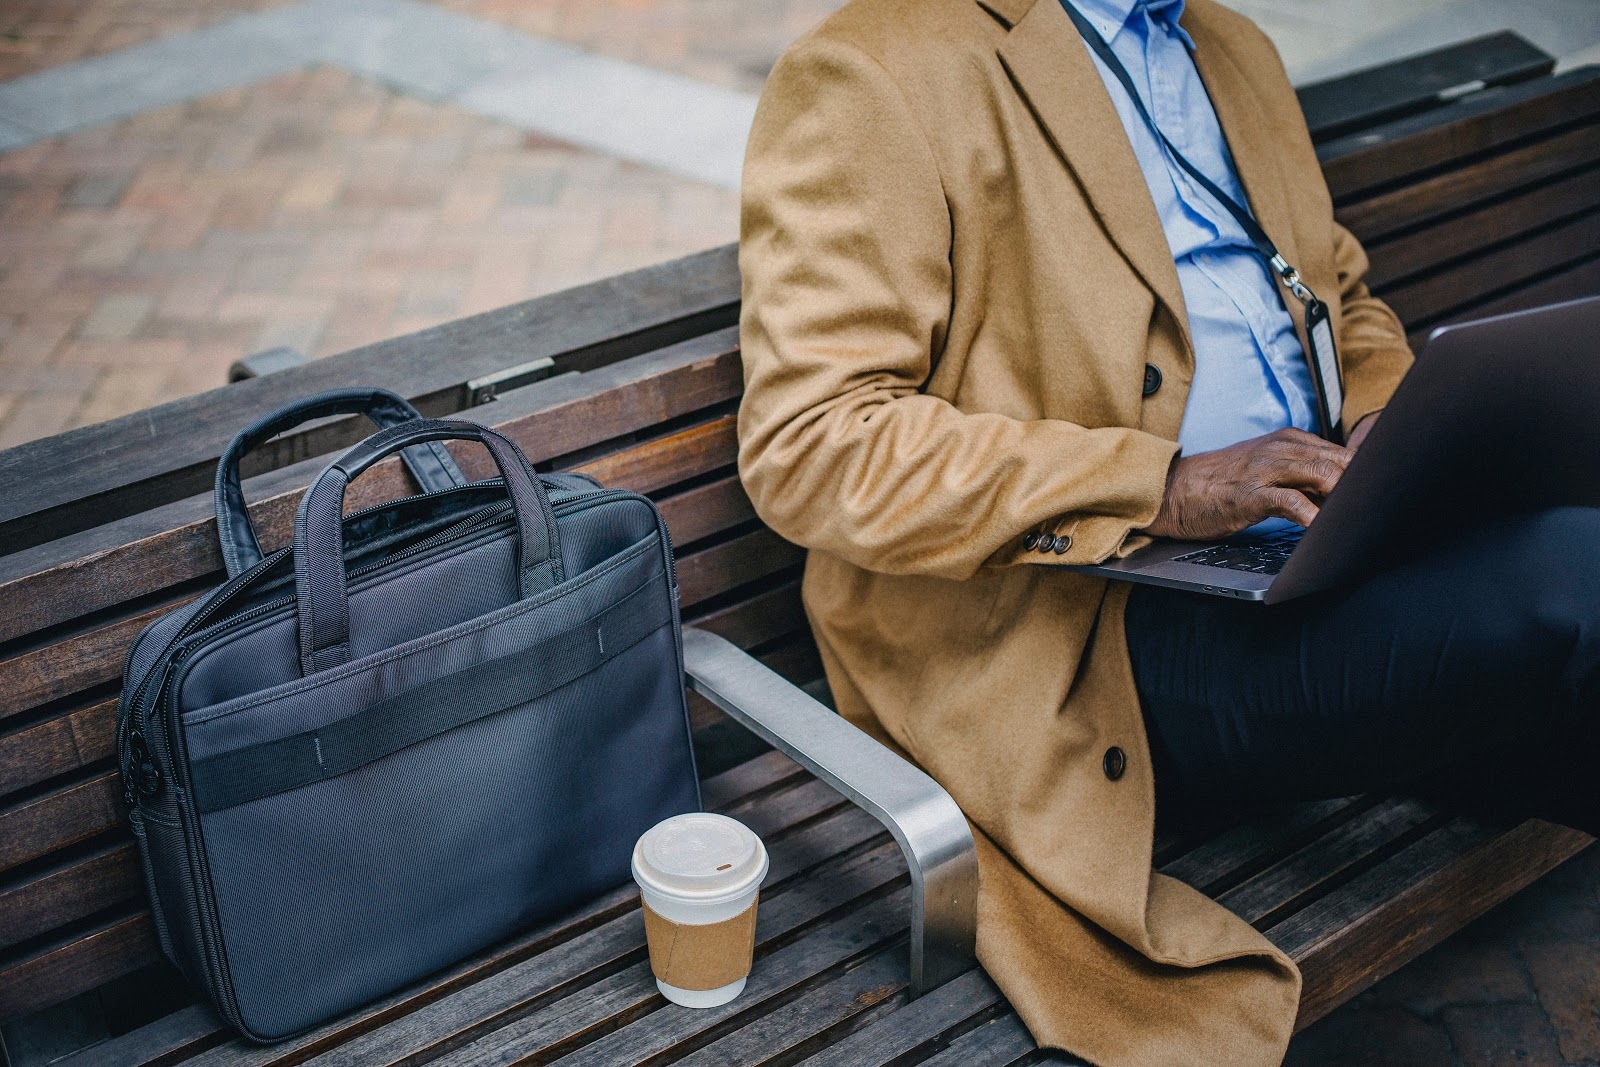 crop faceless man using a laptop on bench next to coffee and black briefcase